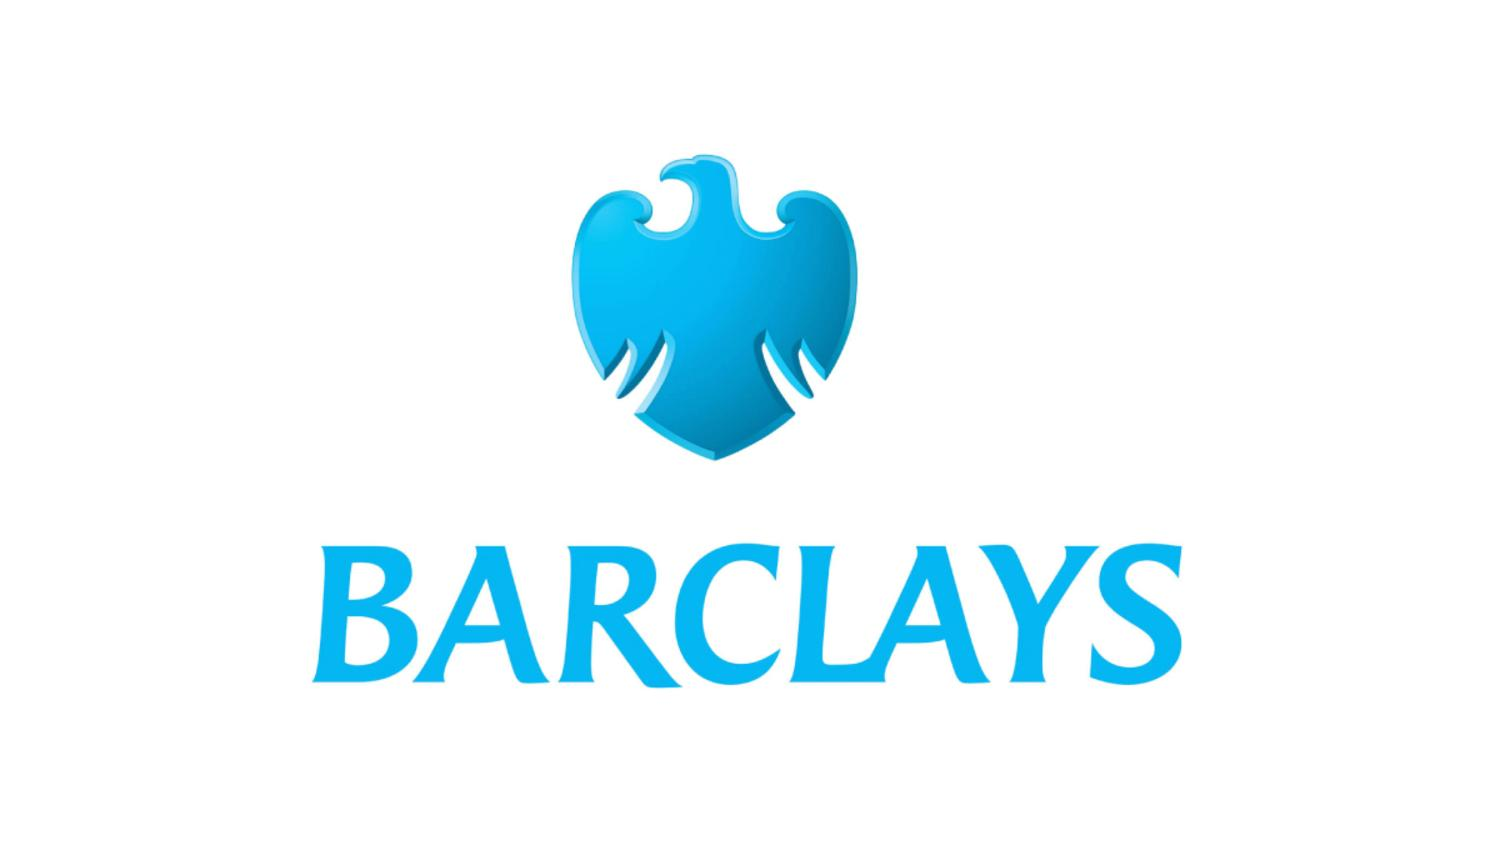 Barclays using Haskell